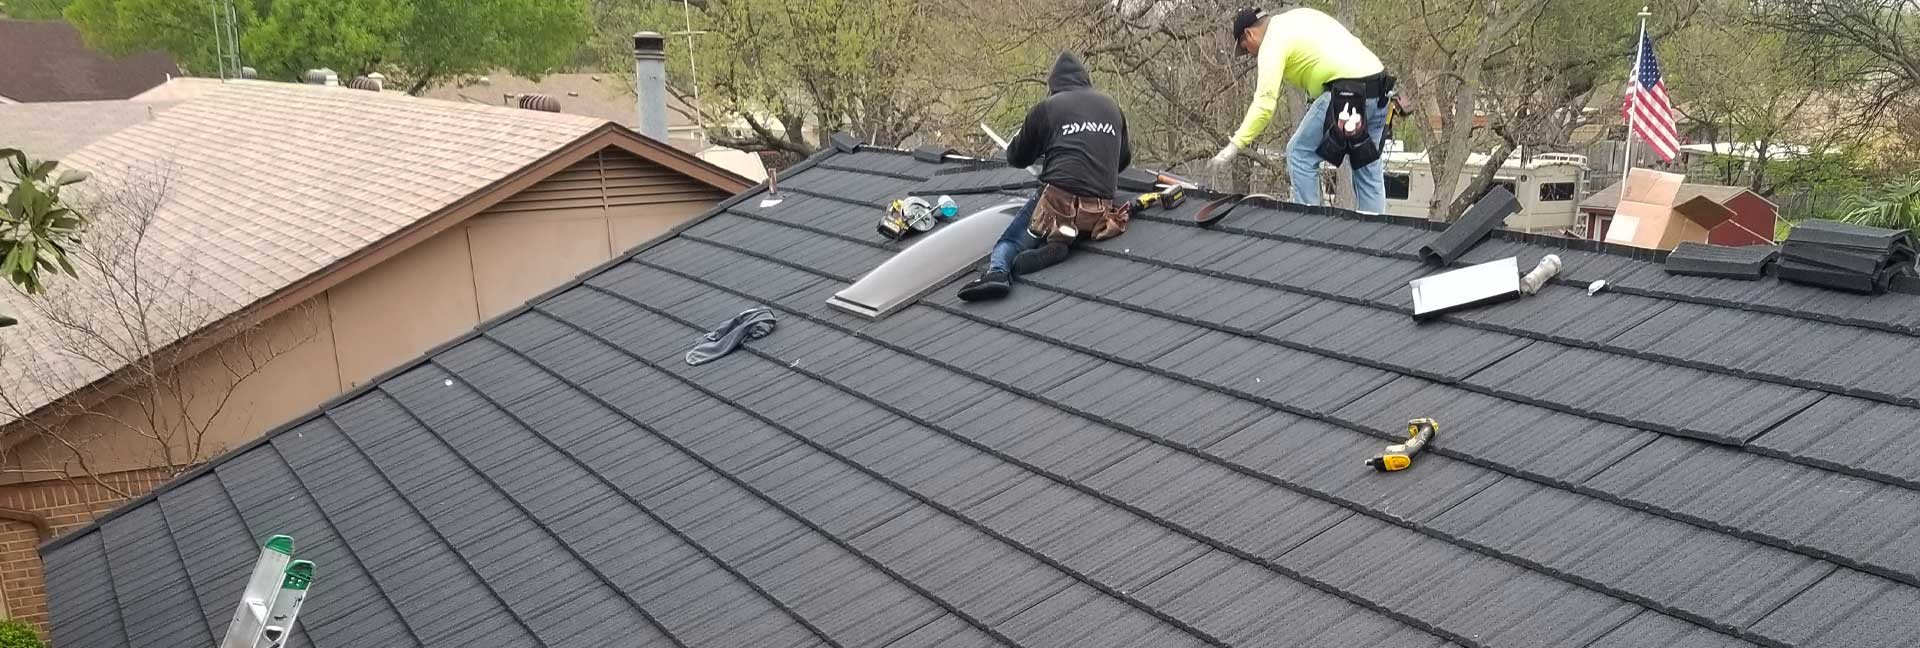 Hail DamageRoofRepair, MetalRoofing, and NewRoofforArlington, TX, Residents by professionals